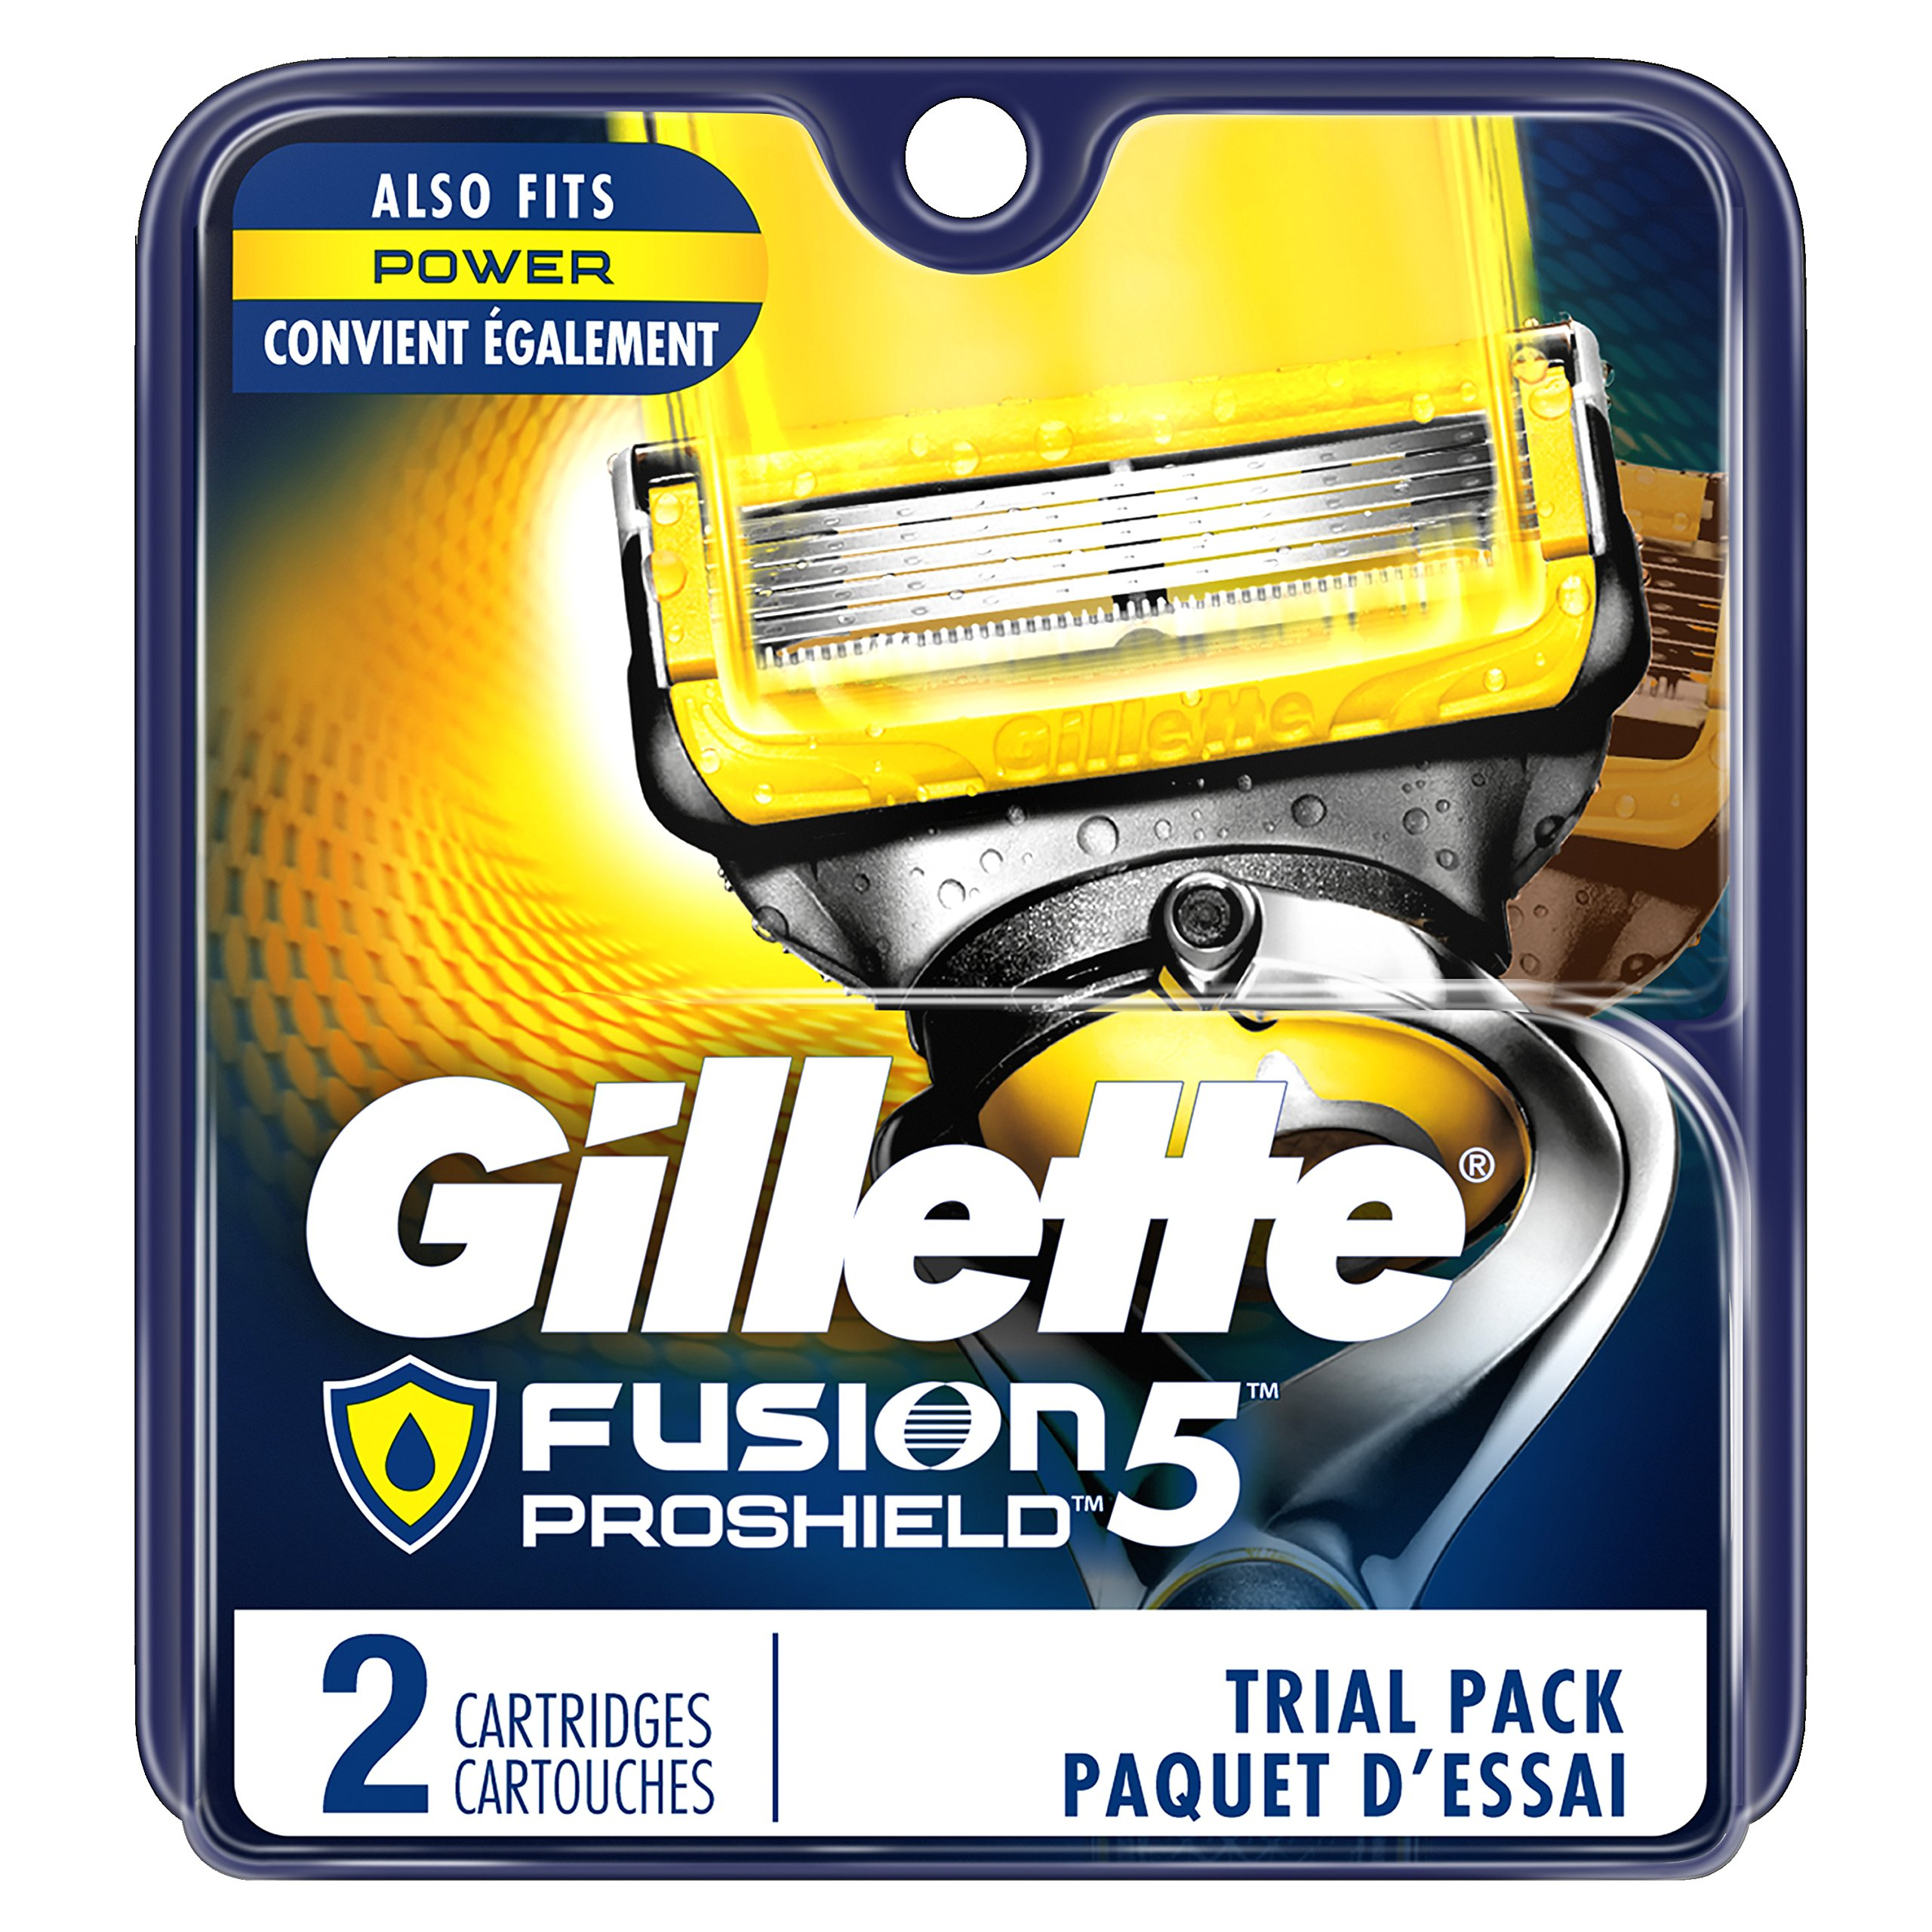 Gillette Fusion5 ProShield Men's Razor Blades, 2 Blade Refills (Packaging May Vary)